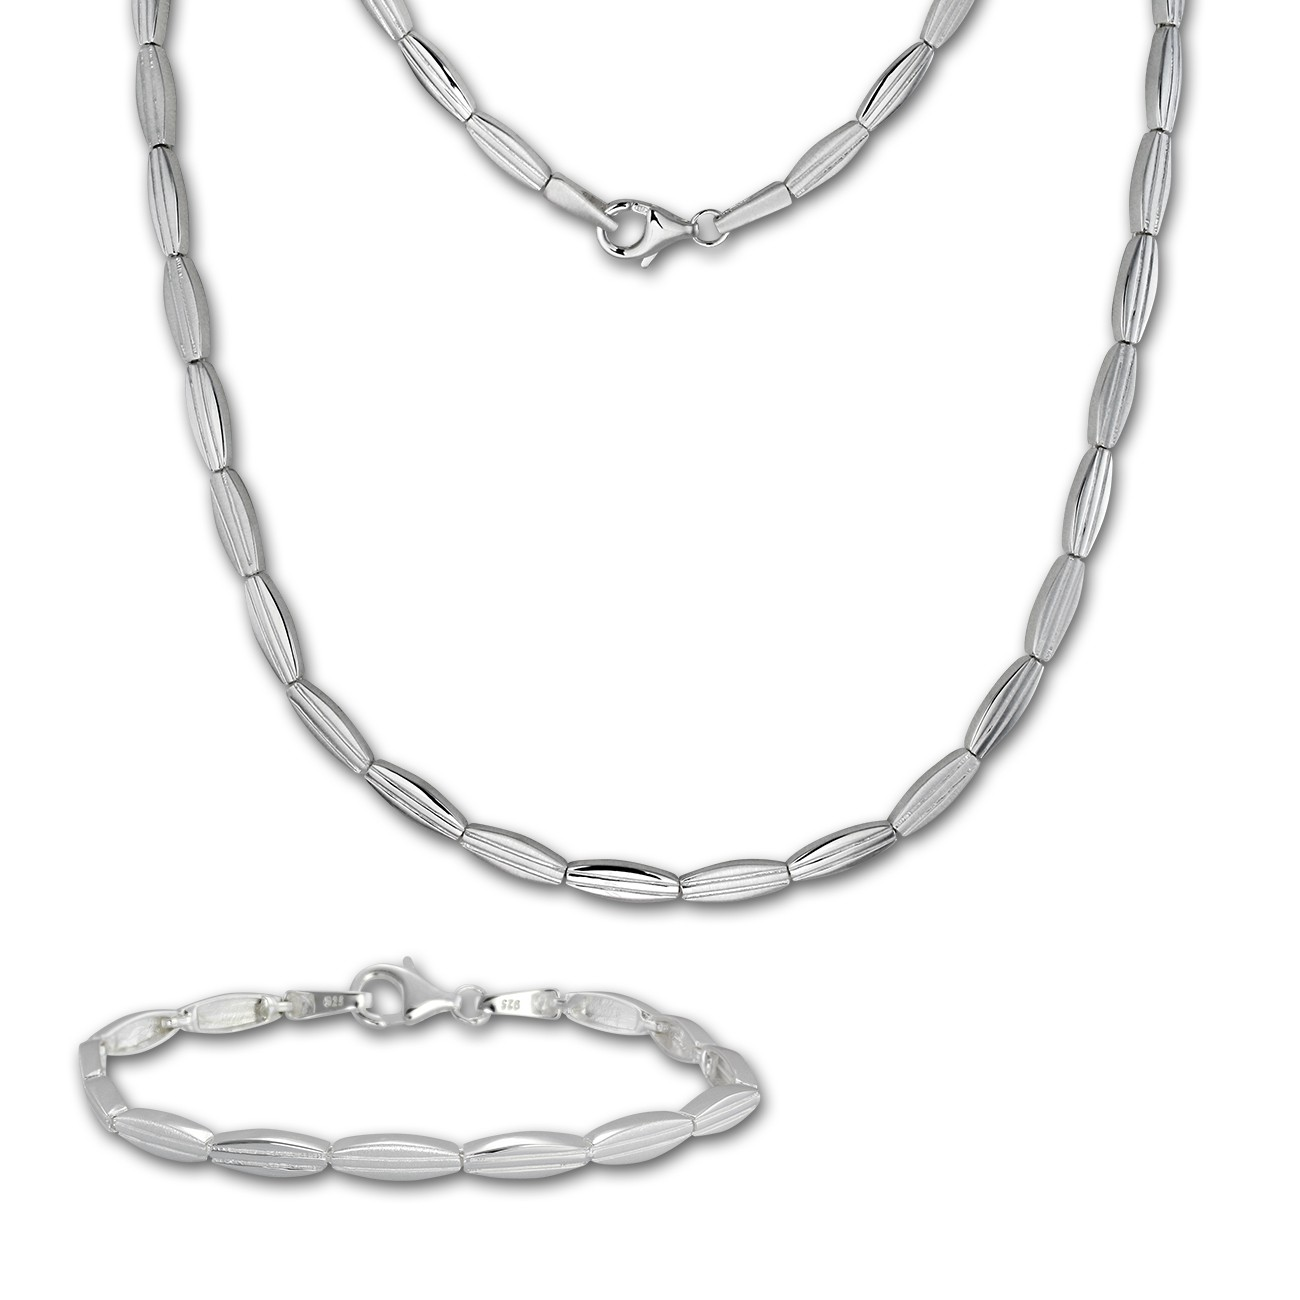 Collier Schmuck Silberdream Schmuck Set Fantasie Collier And Armband Damen